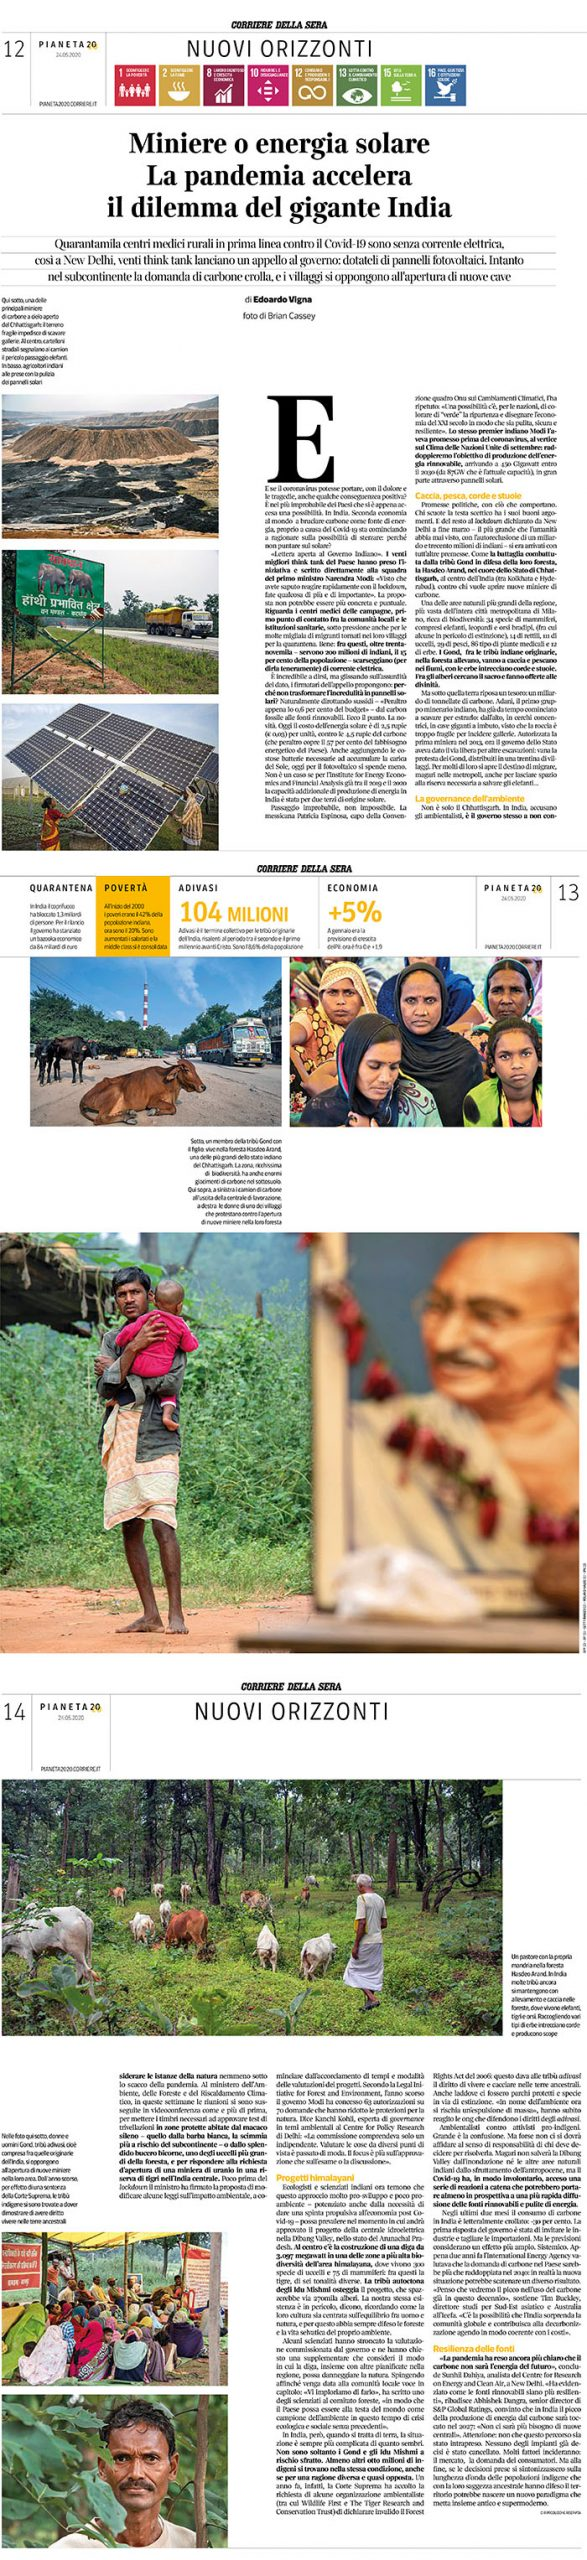 Corriere Della Sera - Adani, Gond Peoples and Hasdeo Arand Forest story - images by Brian Cassey